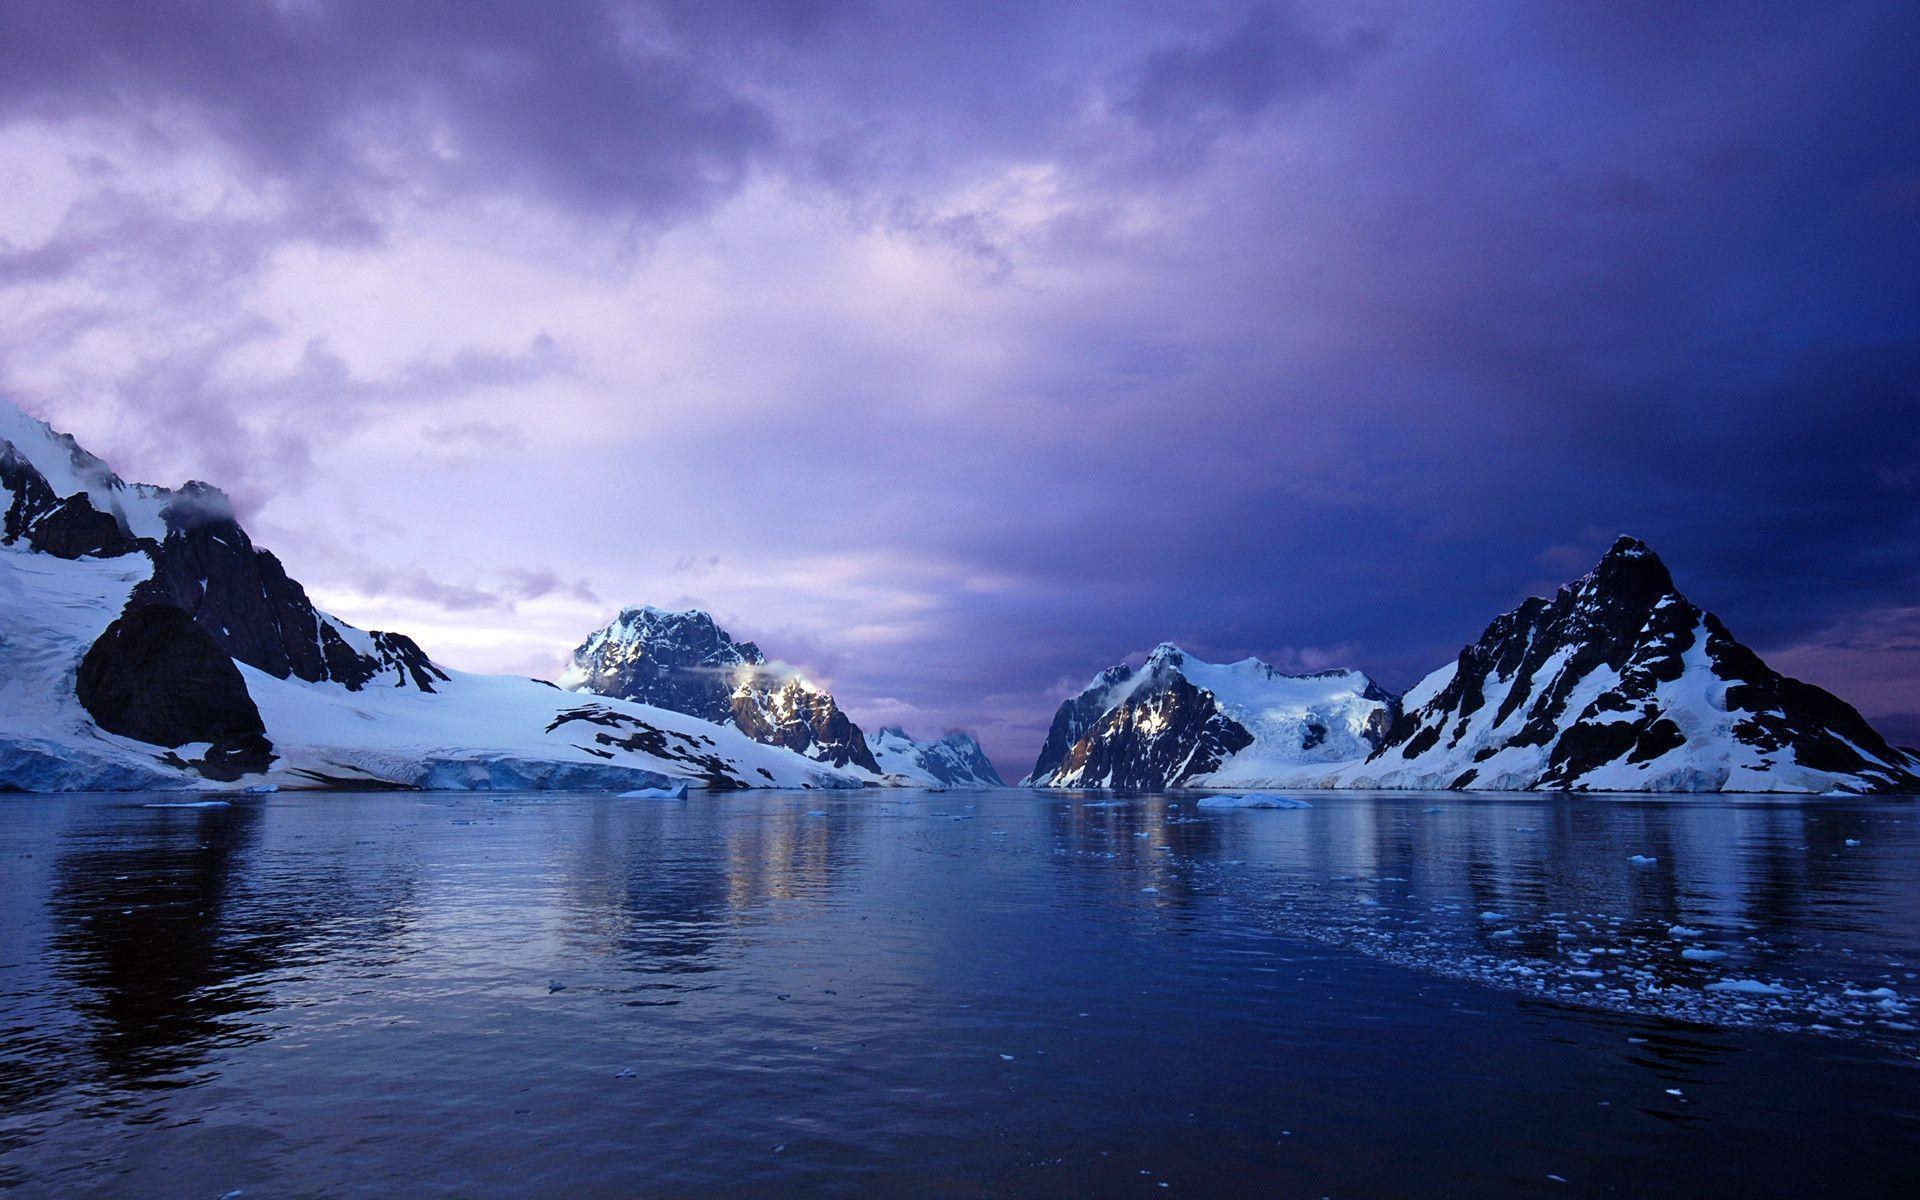 antarctica and clouds wallpaper - photo #31